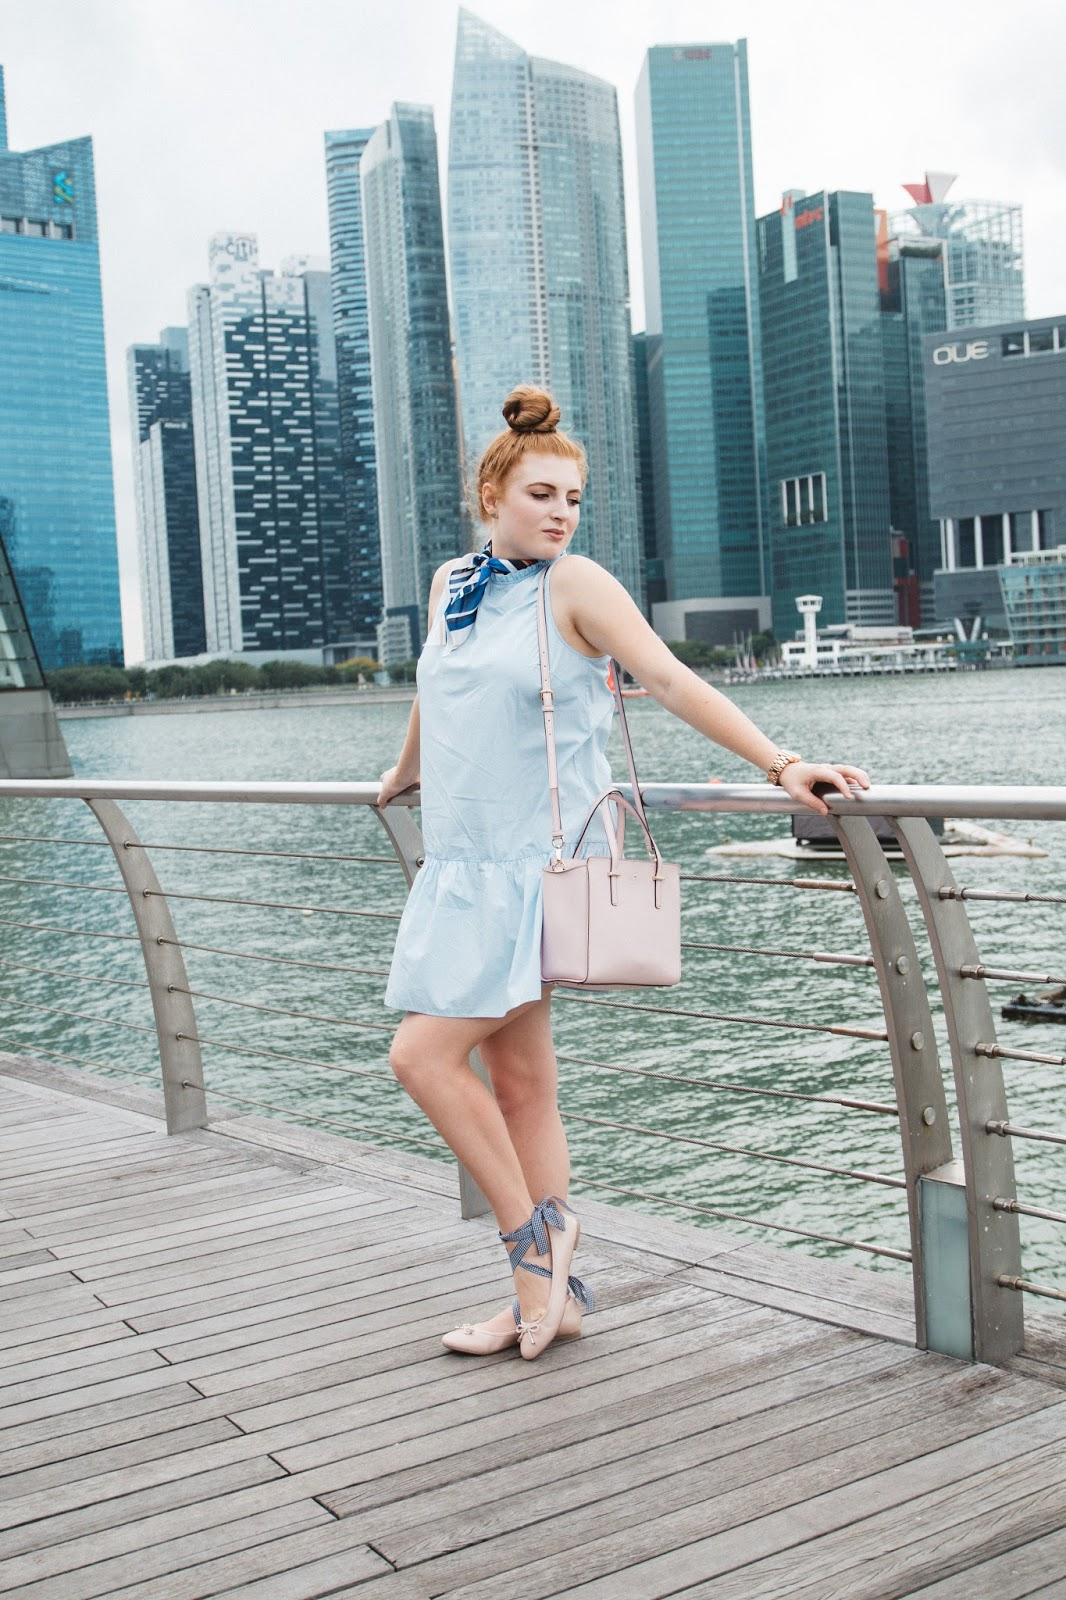 Blue Dress and Neck Tie in Singapore | Global Fashion Gal Blog